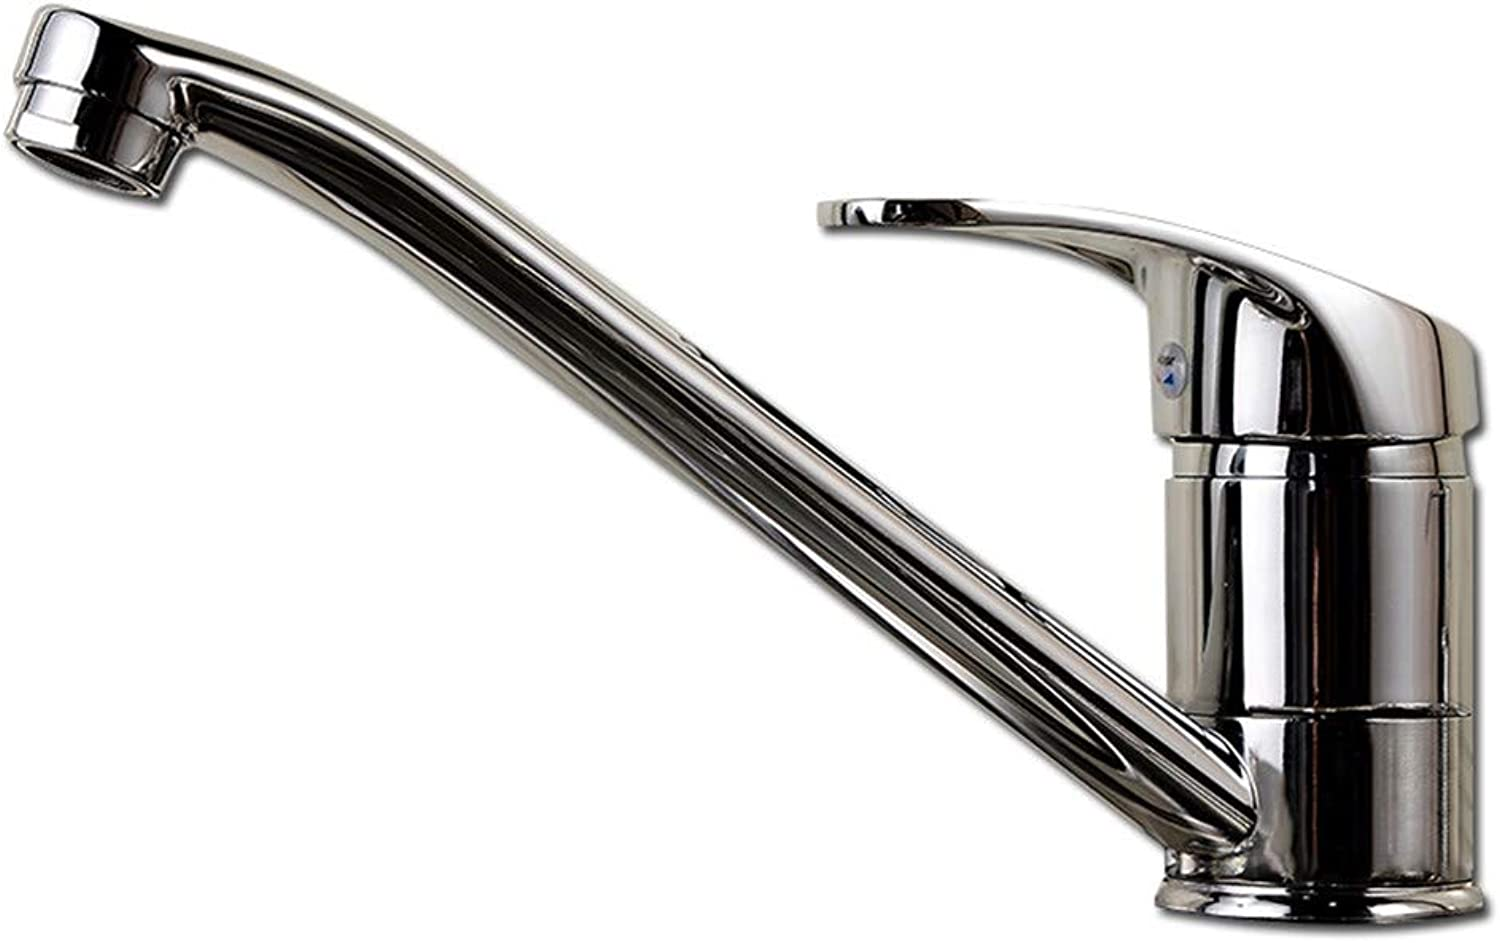 Cwill Kitchen Sink Basin Faucet Deck Mount Bright Chrome Washing Basin Mixer Kitchen Water Tap Water Faucet